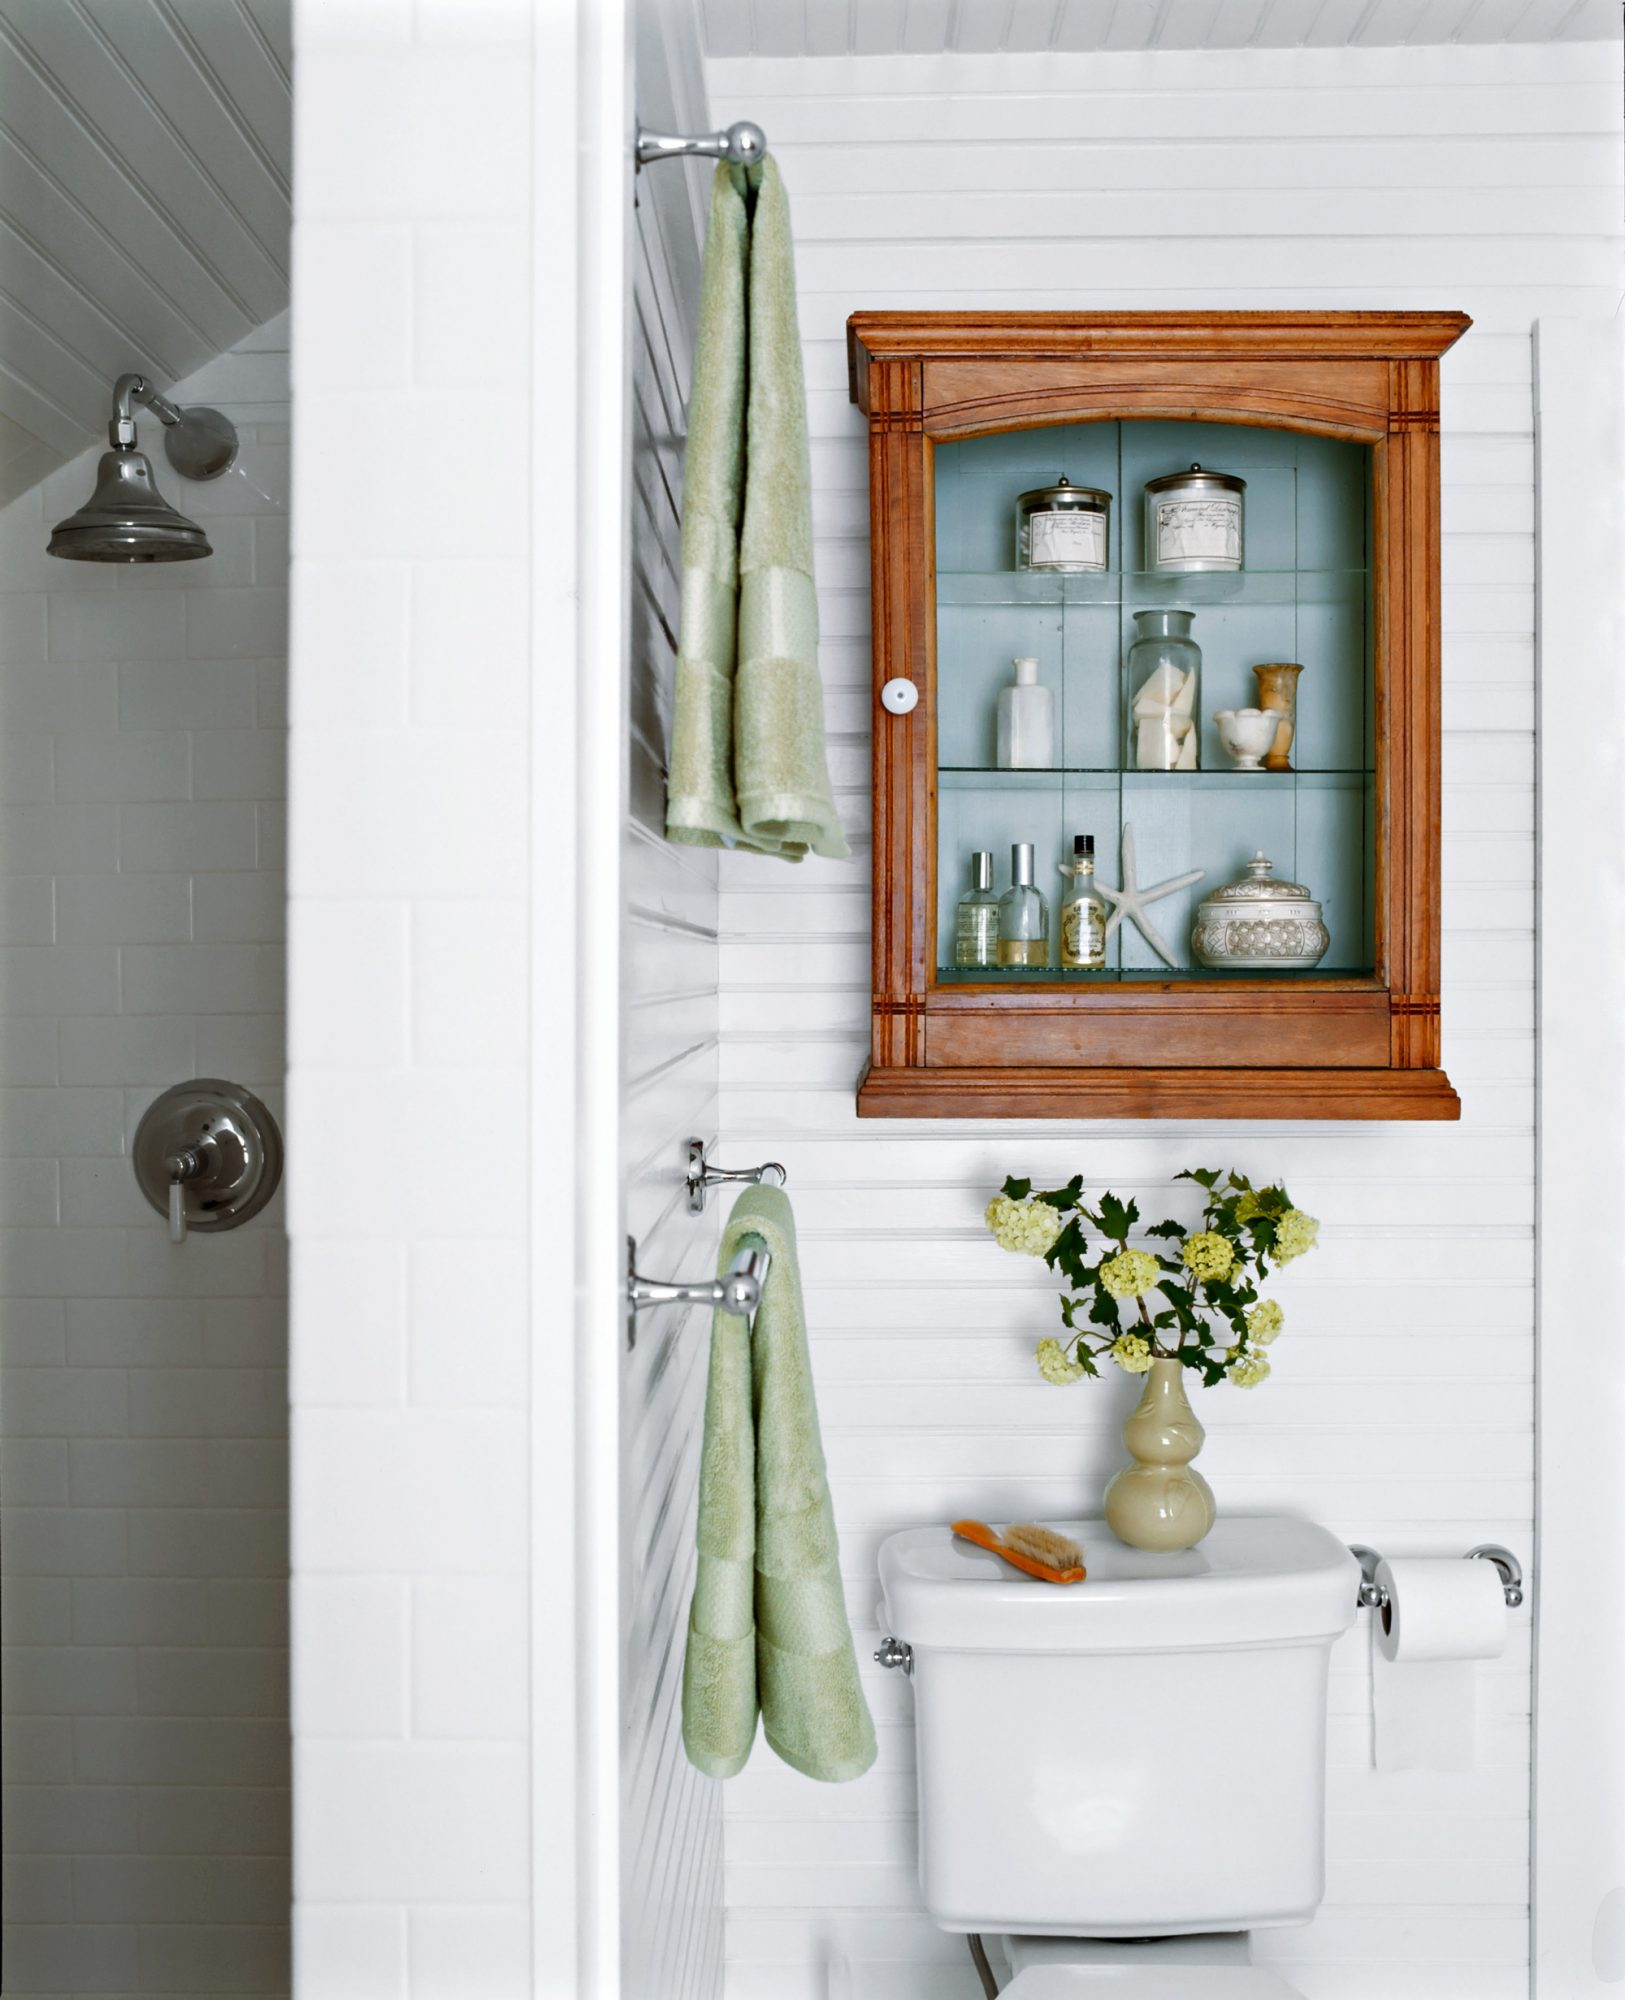 close-up white bathroom wooden cabinet with glass shelves